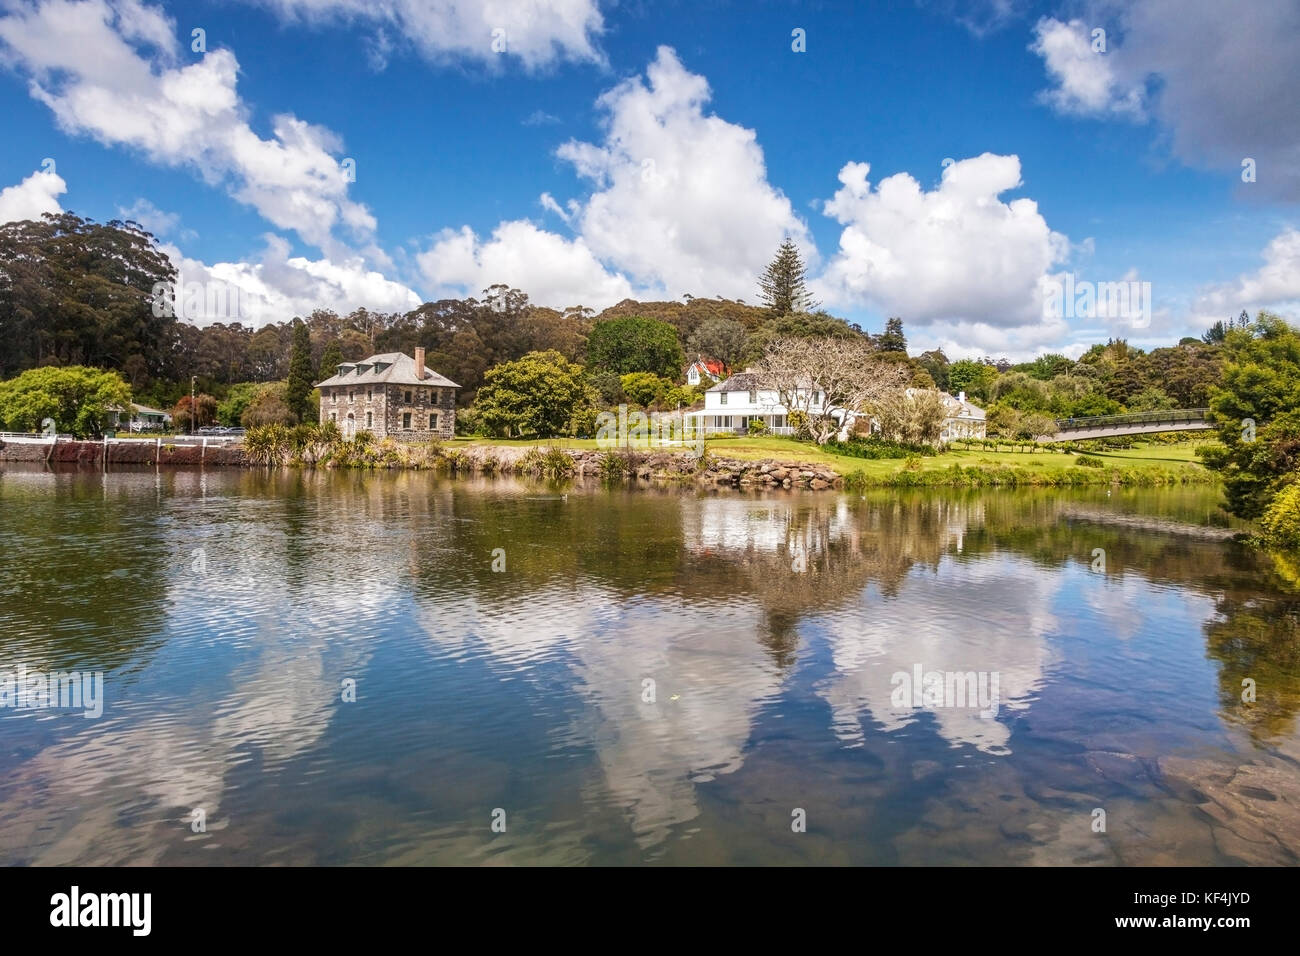 New Zealand's oldest stone building, the Stone Store at Kerikeri, Bay of Islands. Kerikeri in Northland is one - Stock Image